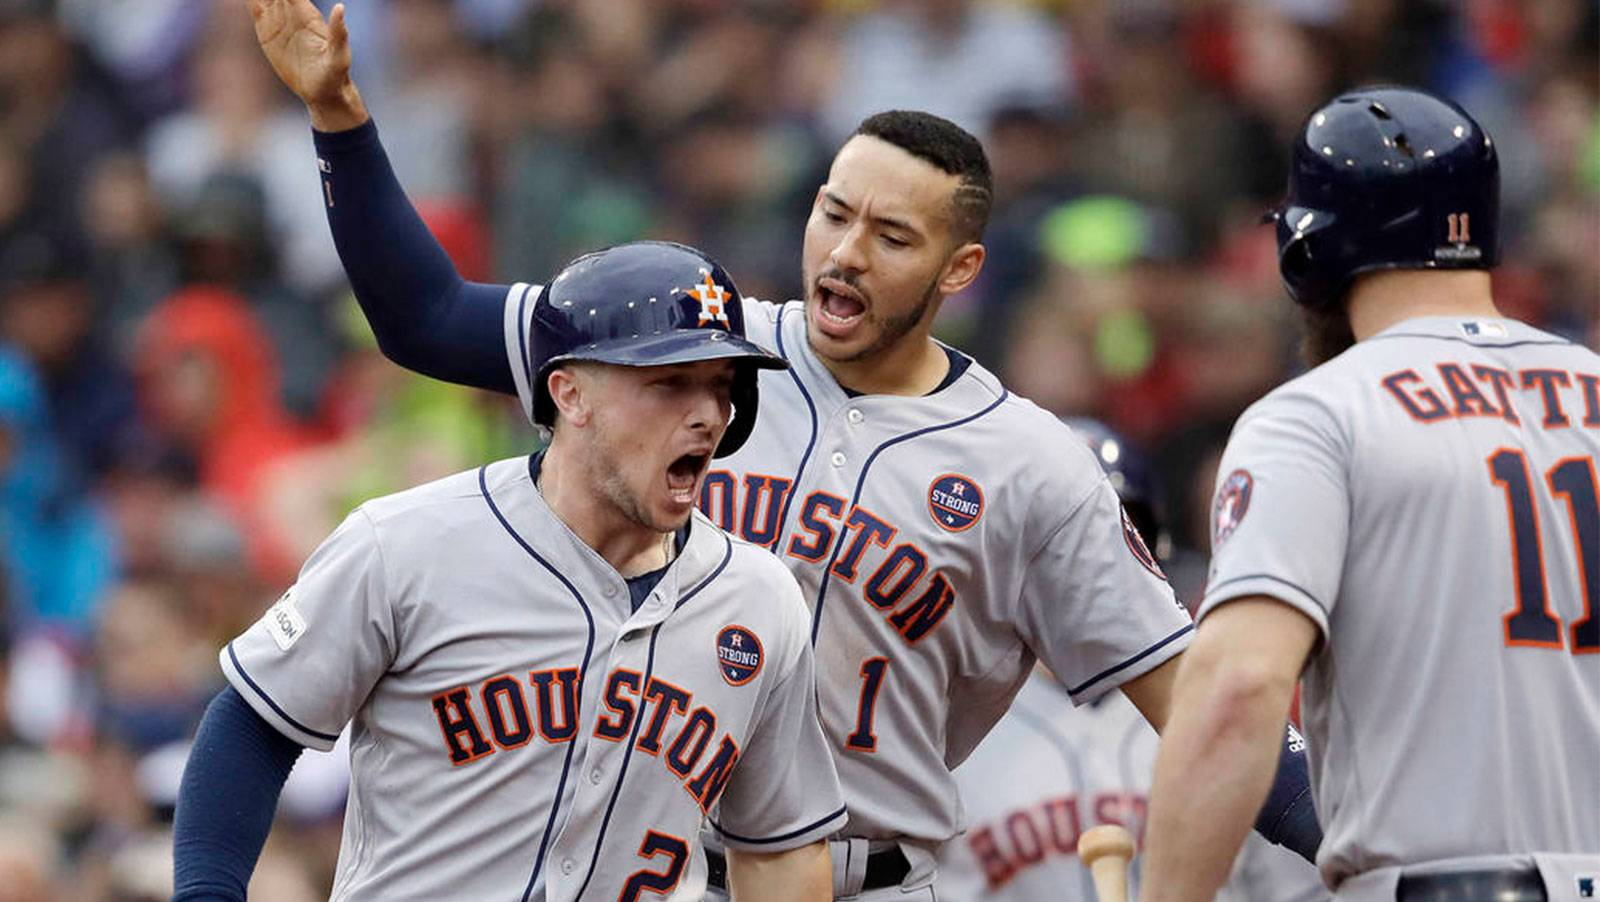 Astros listed as small favorites to repeat as World Series Champs